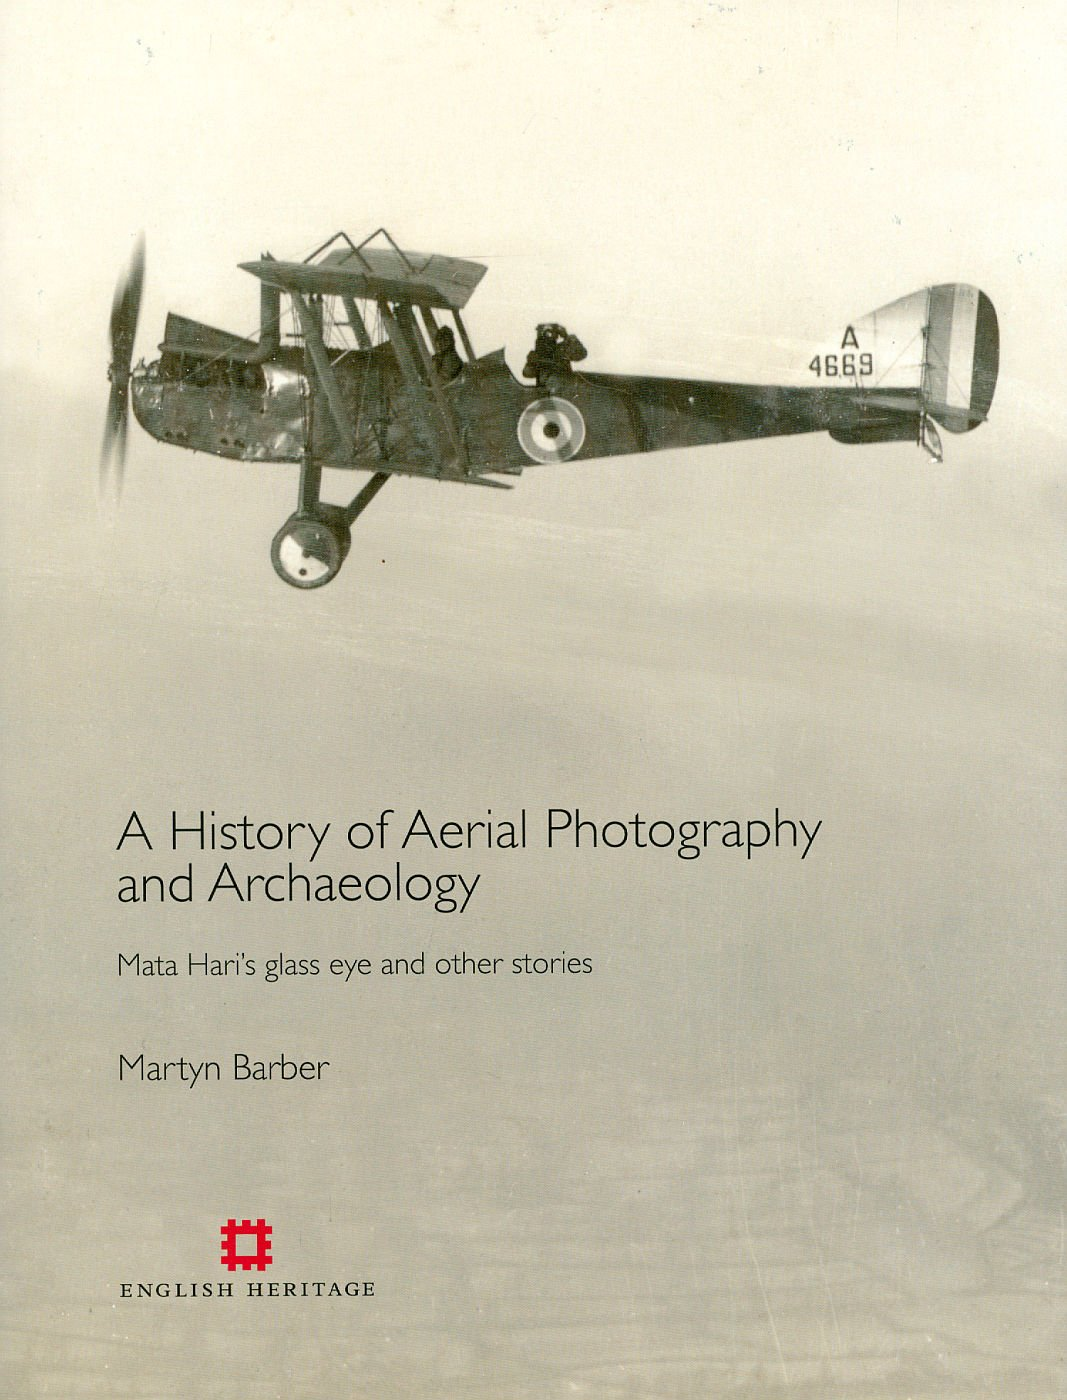 History of Aerial Photography and Archaeology: Mata Hari's glass eye and other stories